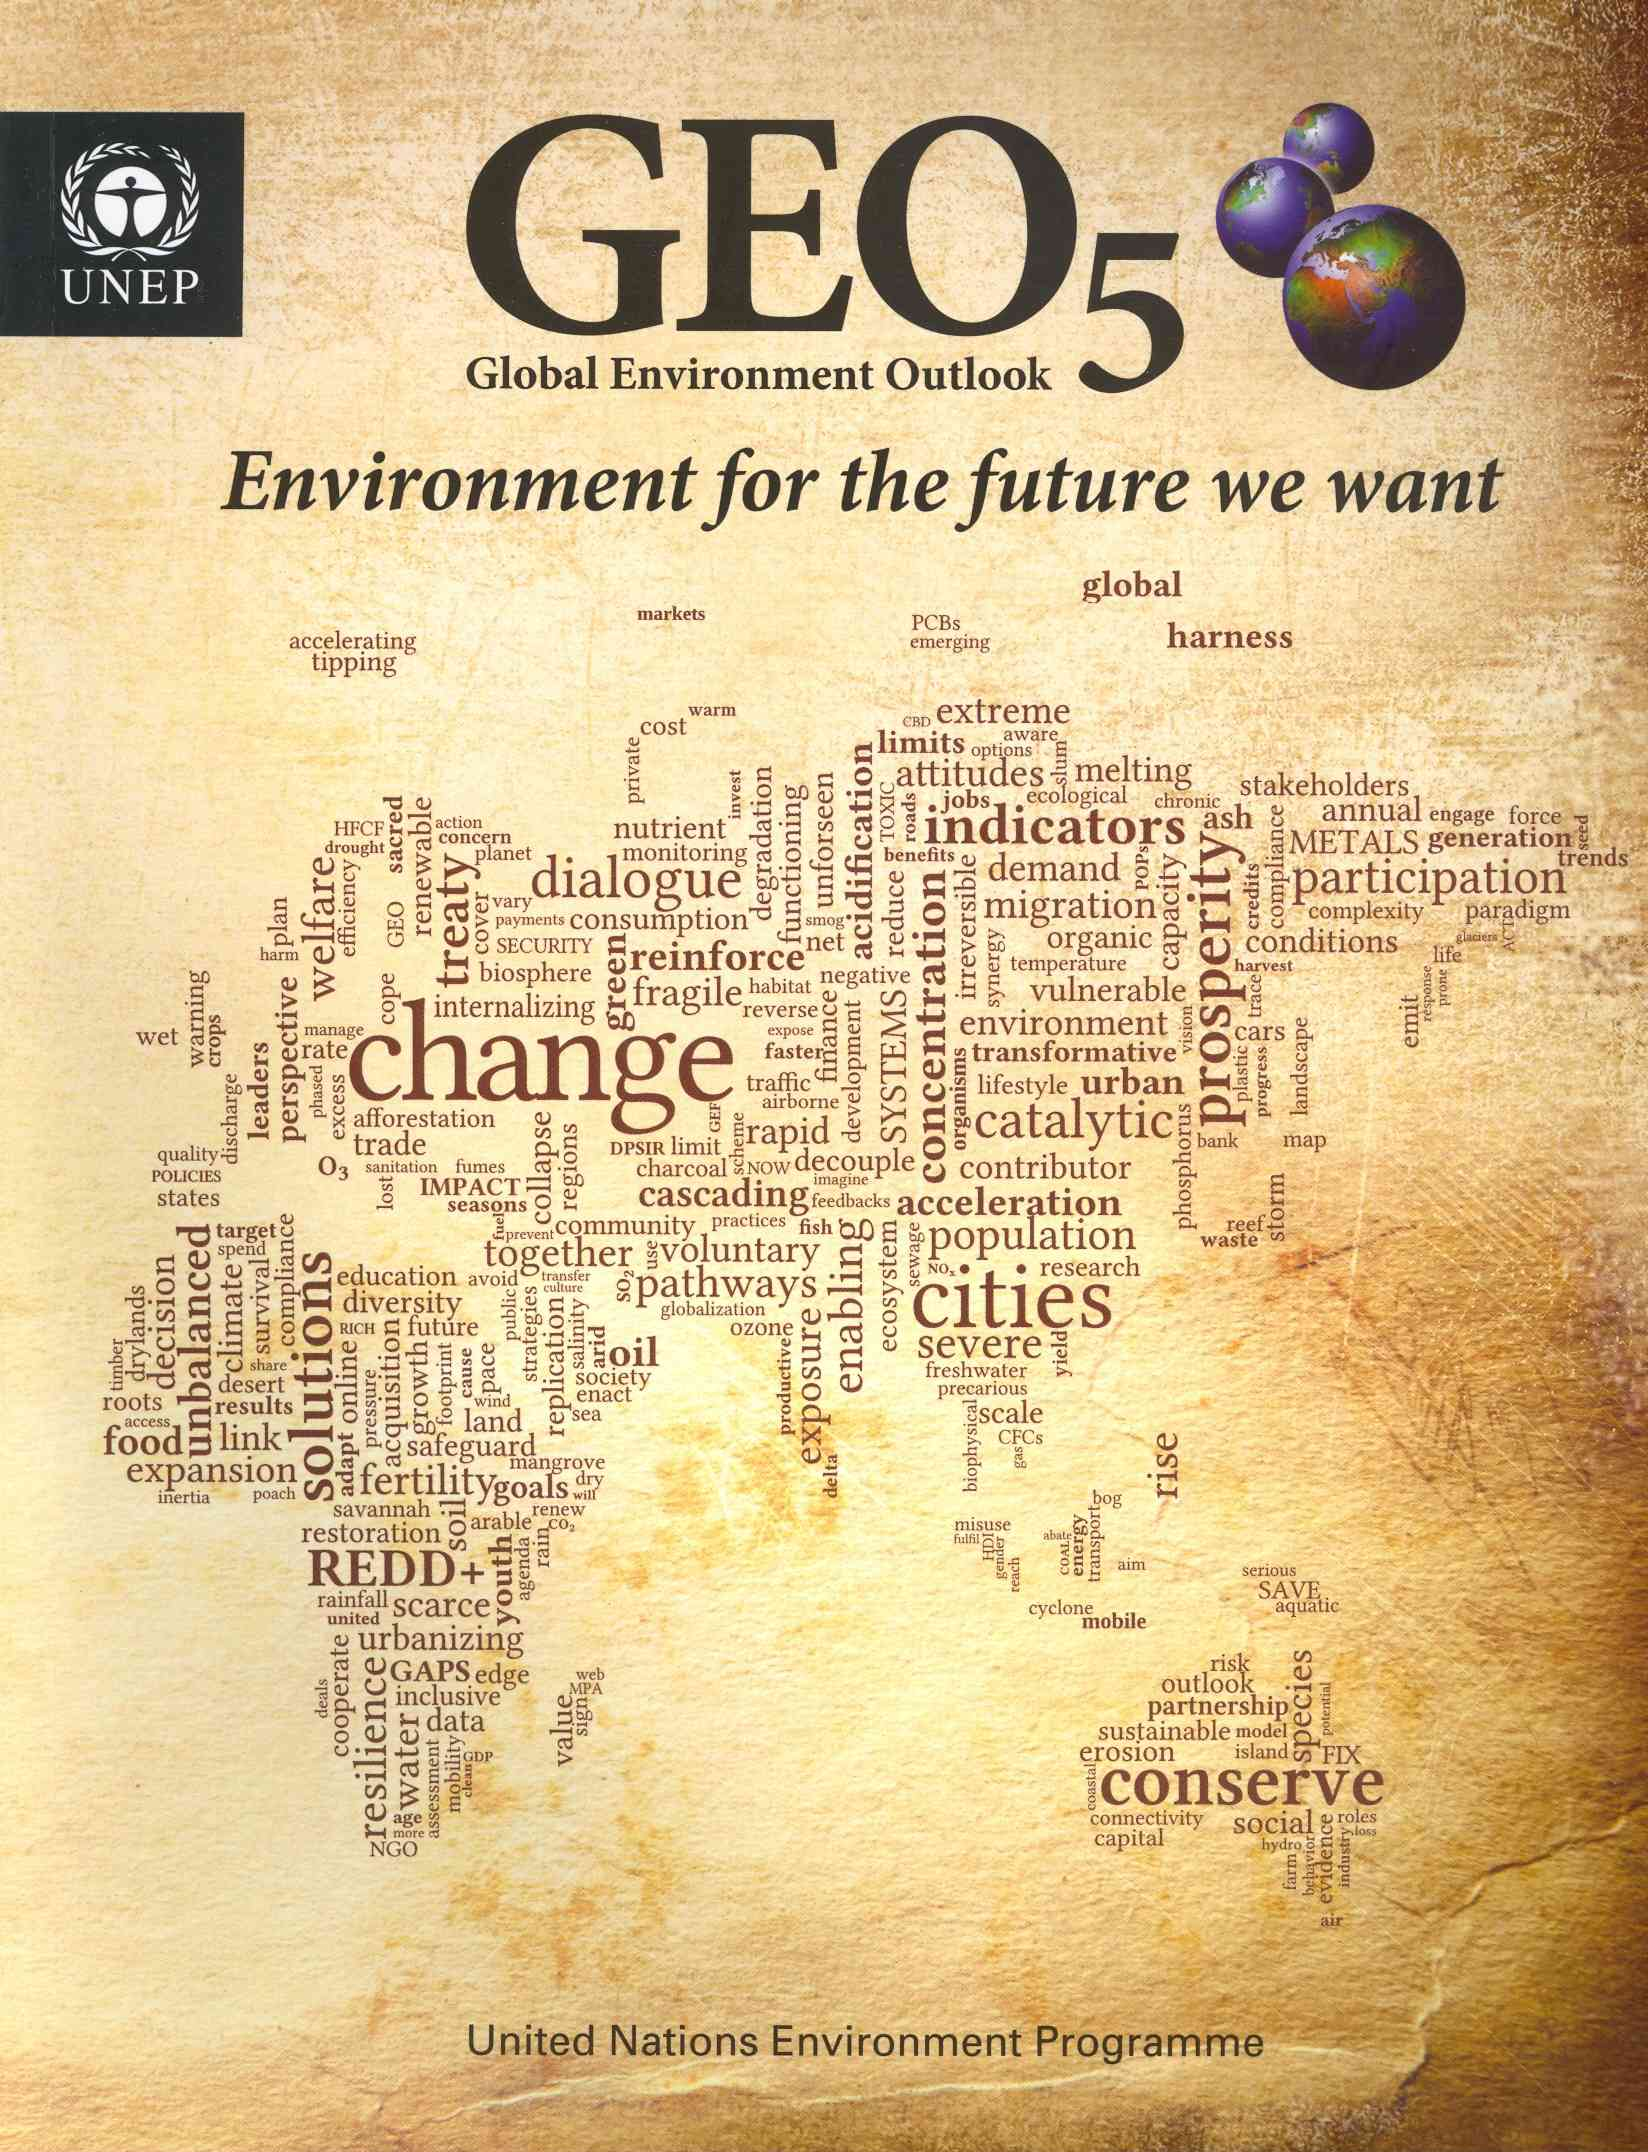 Global Environment Outlook 5 (Geo 5)